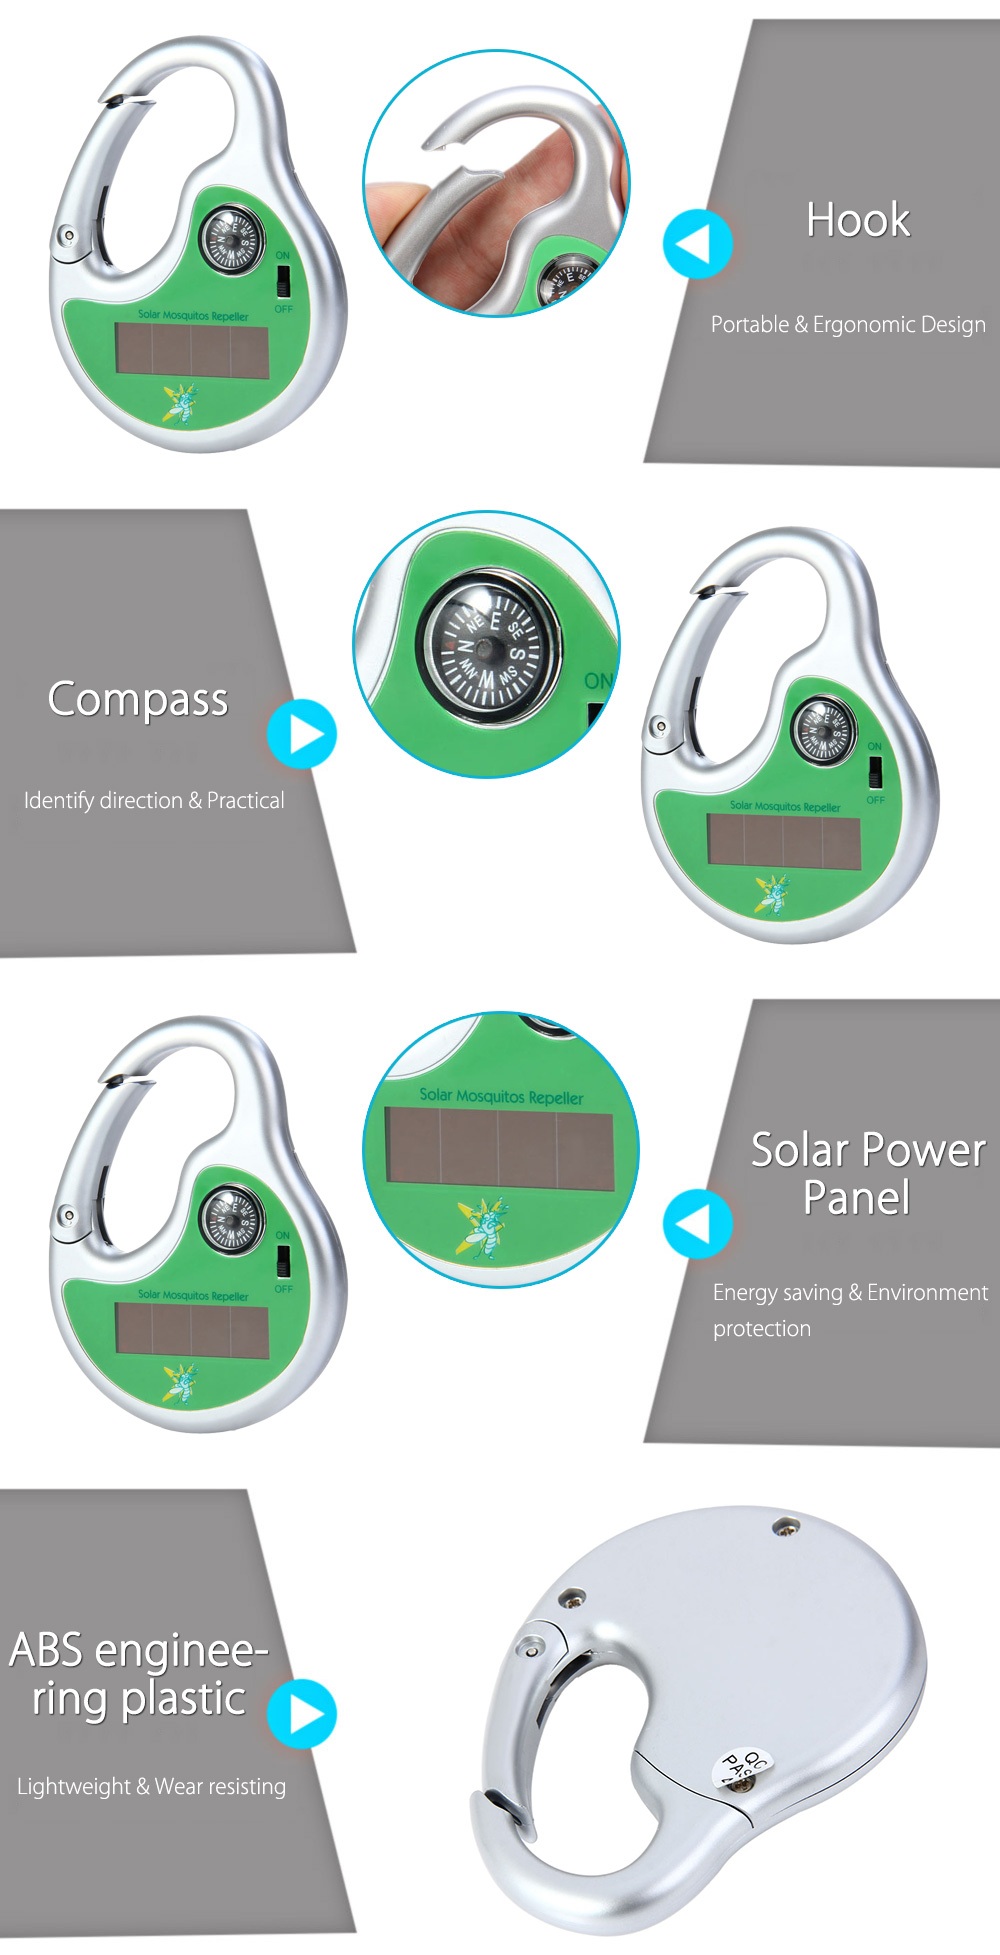 Digisonic 12d8 Solar Mosquito Repeller 699 Free Shipping Power Saver Circuit Package Contents 1 X Powered Sonic Insect With Compass English User Manual